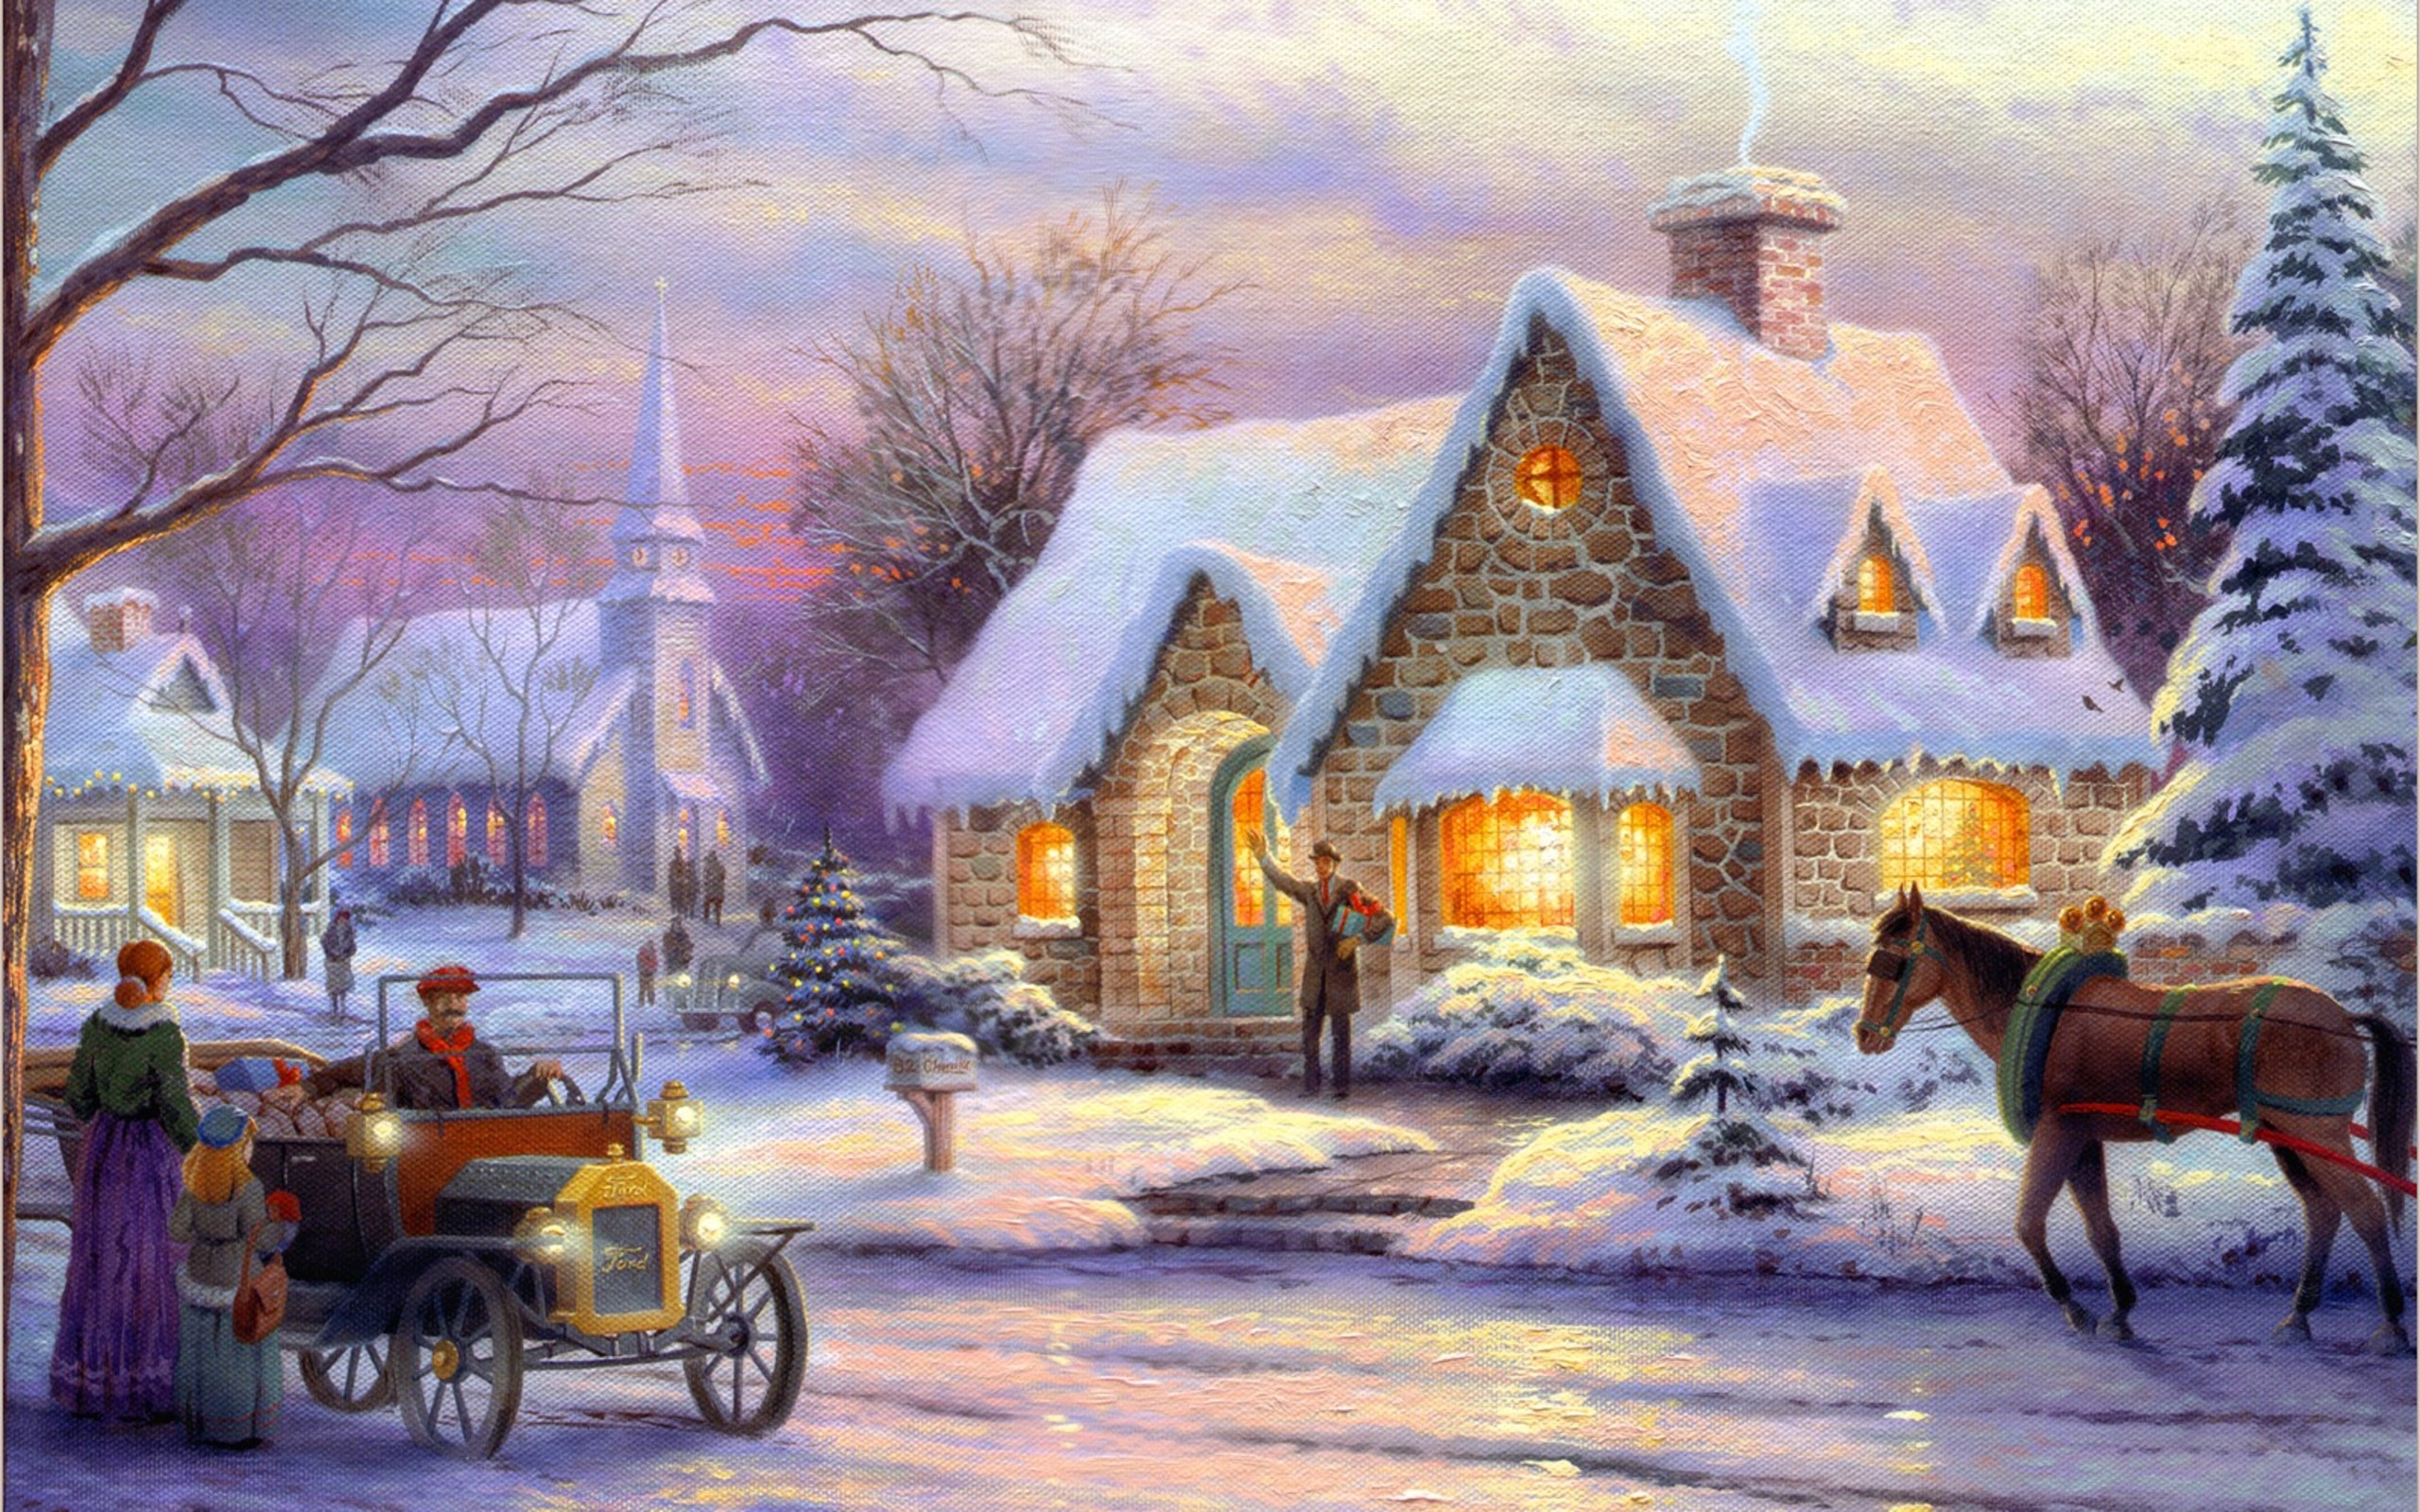 Christmas Village Backgrounds (52+ images)